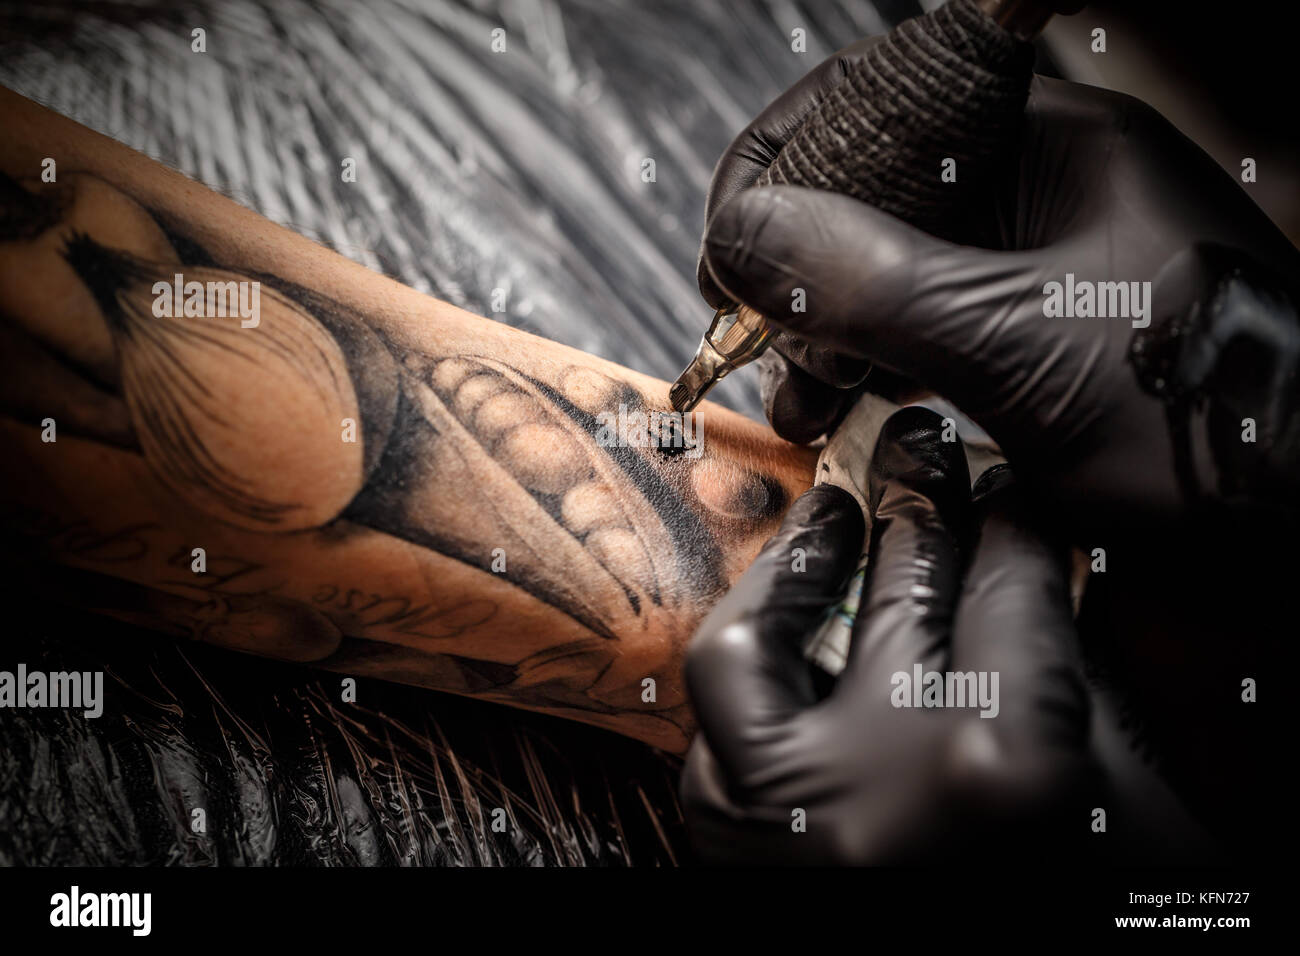 A professional tattoo artist introduces black ink into the skin using a needle from a tattoo machine. - Stock Image